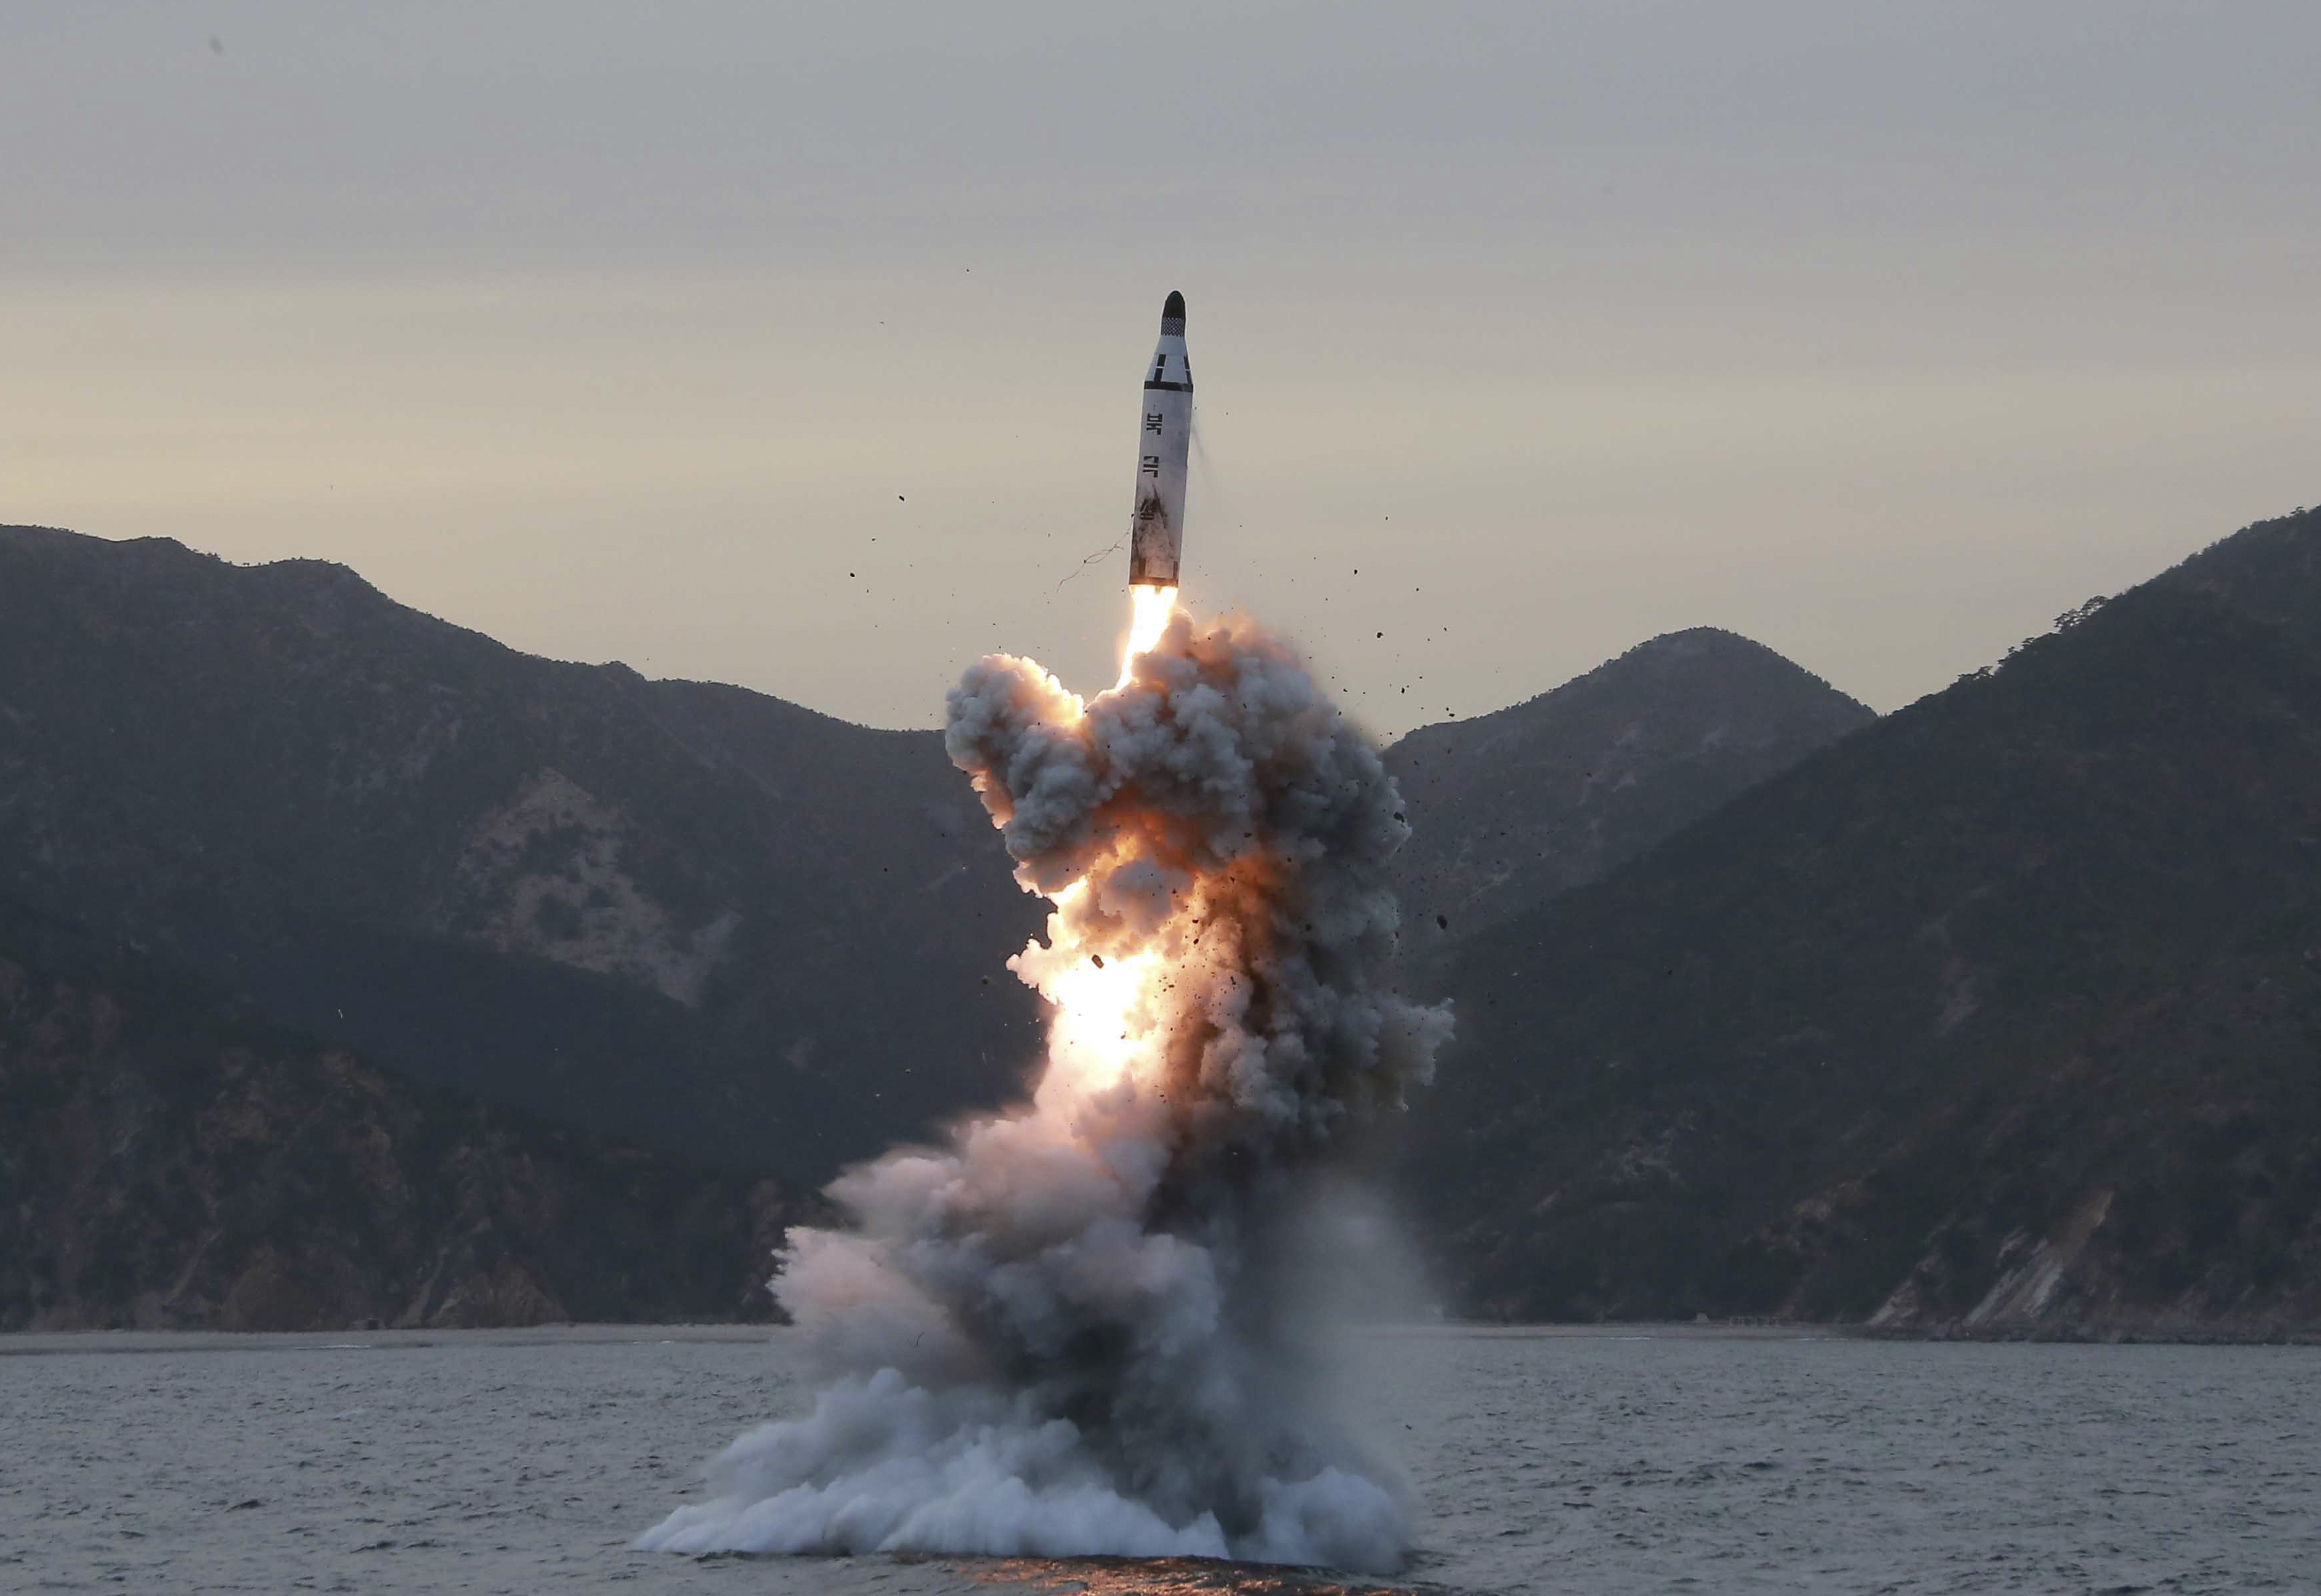 epa05888911 (FILE) - An undated photo released on 24 April 2016 by North Korean Central News Agency (KCNA) shows an 'underwater test-fire of strategic submarine ballistic missile' conducted at an undisclosed location in North Korea (reissued 05 April 2017). According to media reports on 05 April 2017, North Korea fired a ballistic missile into the Sea of Japan. The missile was fired from the port city of Sinpo, on North Korea's east coast. The launch occurred ahead of a summit between Chinese and US leaders organized to discuss North Korea's military programs and capabilities.  EPA/KCNA   EDITORIAL USE ONLY